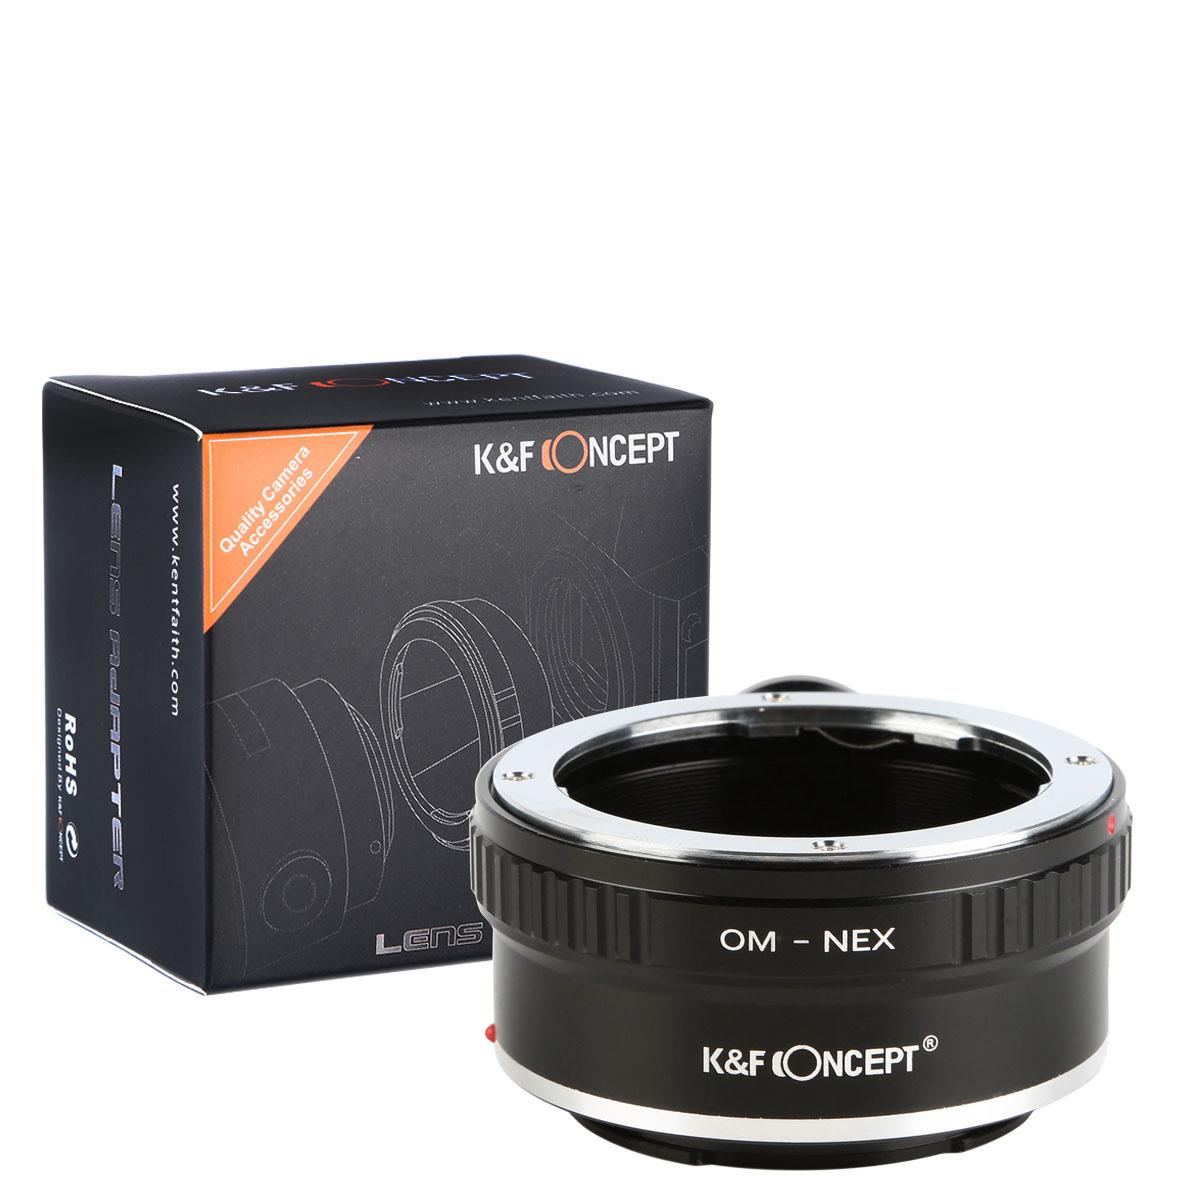 K&F M16102 Olympus OM Lenses to Sony E Lens Mount Adapter with Tripod Mount